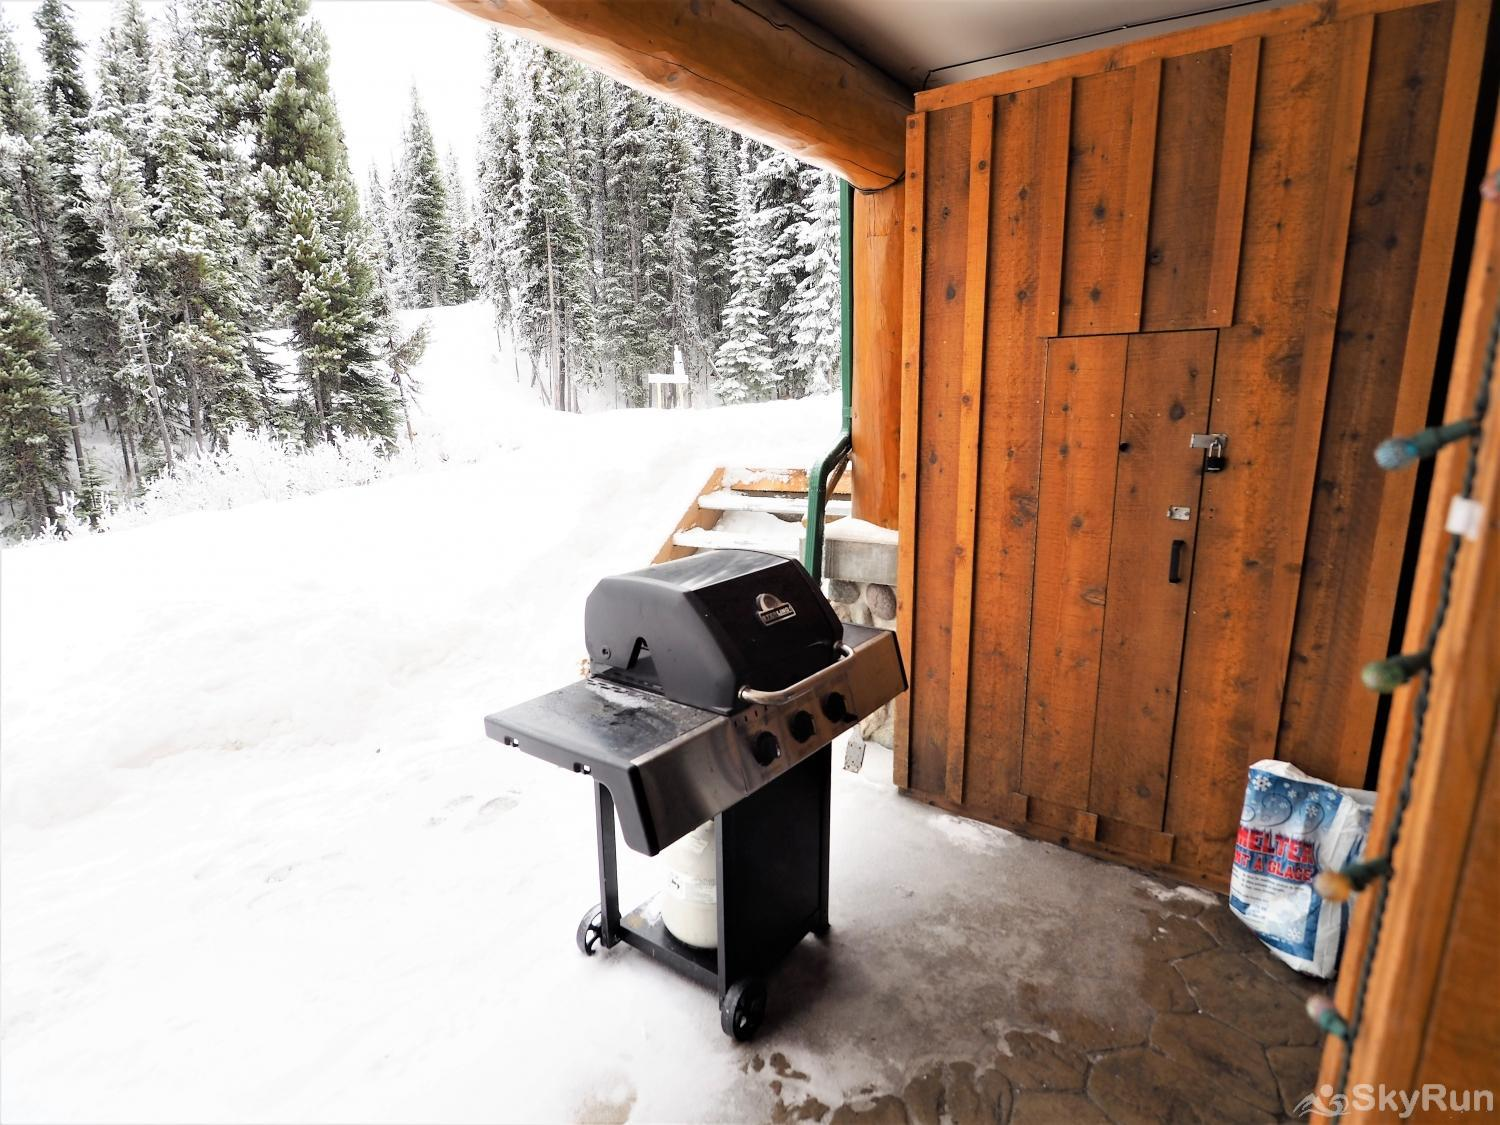 Silver Bullet Ski Out Enjoy BBQing while watching people ski past